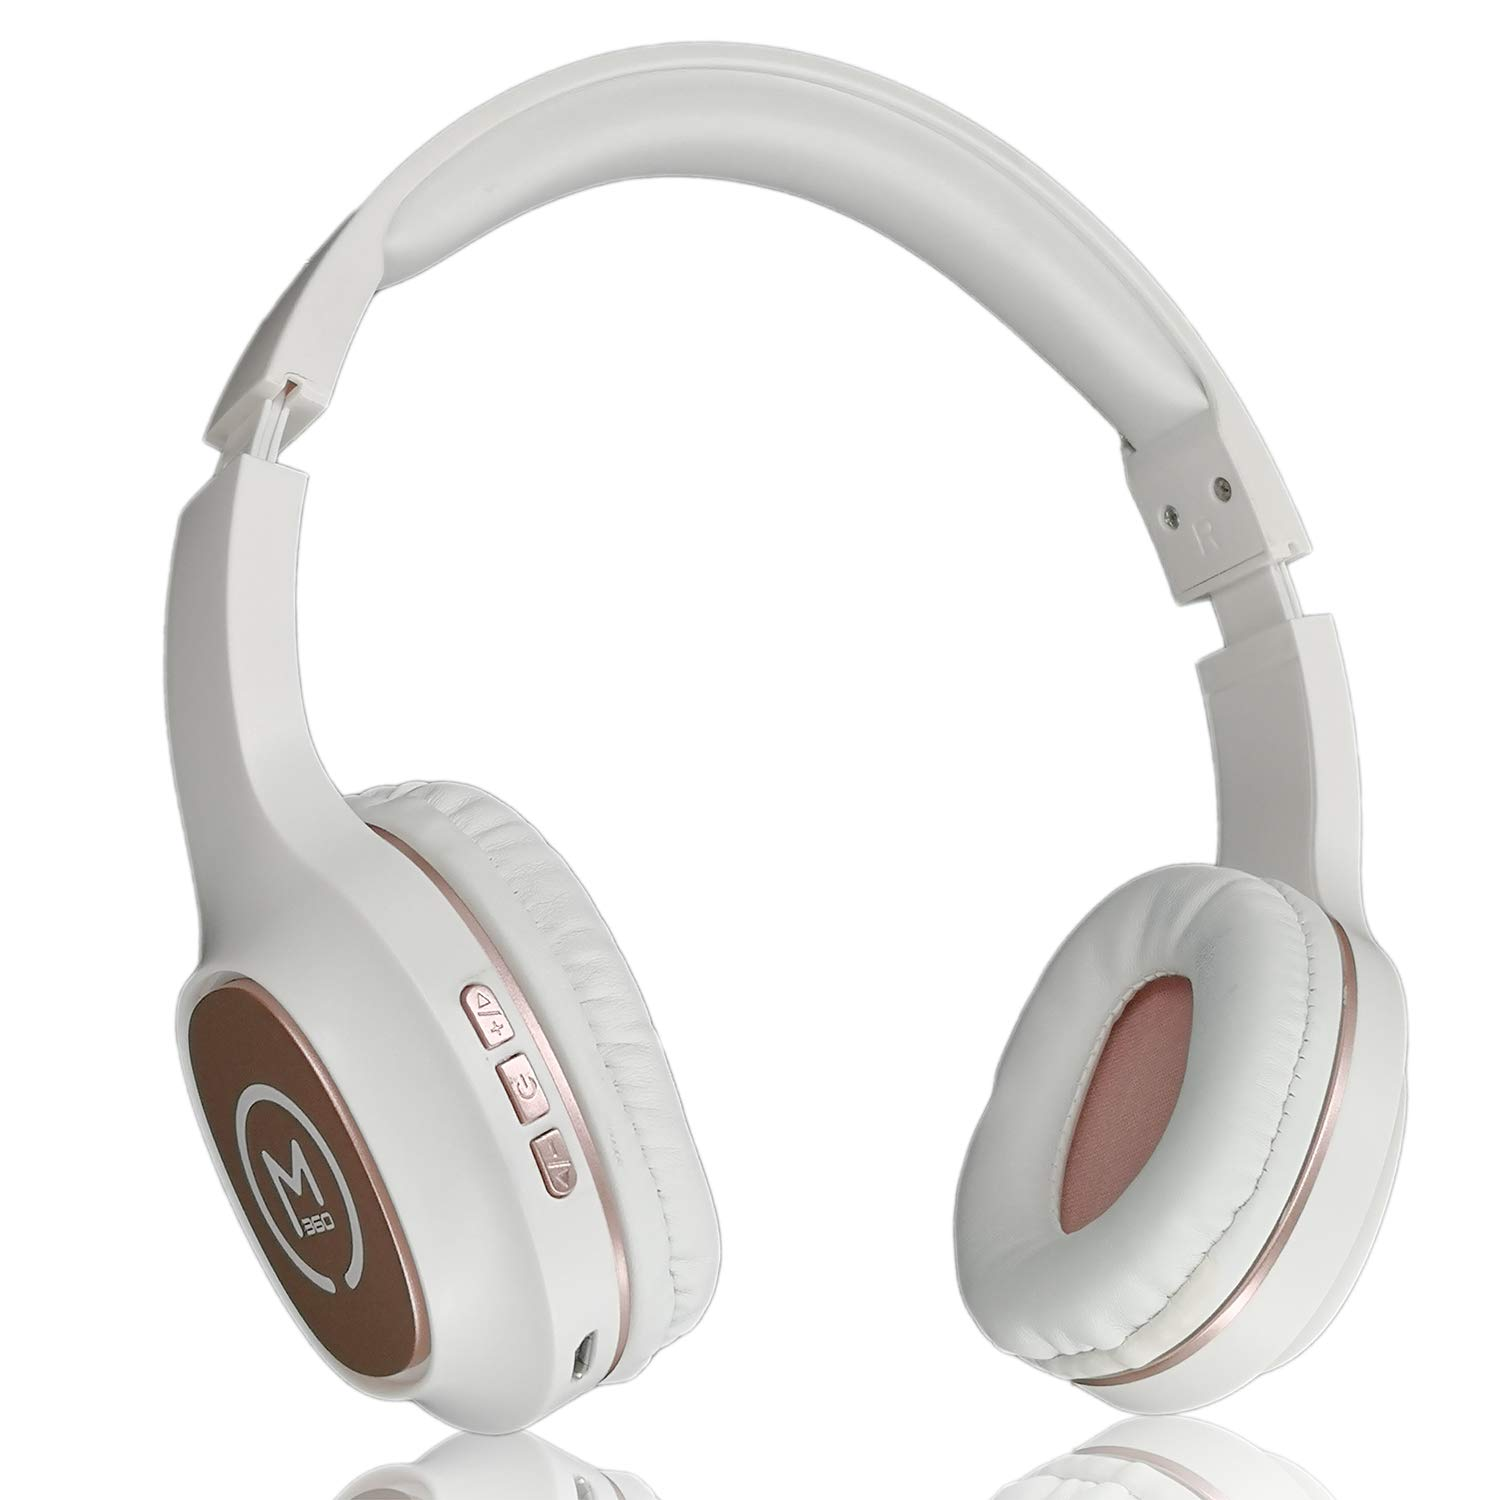 Morpheus 360 Bluetooth Headphones, Wireless Headphones Over Ear, Wireless Headphones with Microphone, Soft Comfortable Ear cups, Wireless & Wired mode White with Rose Gold Accents